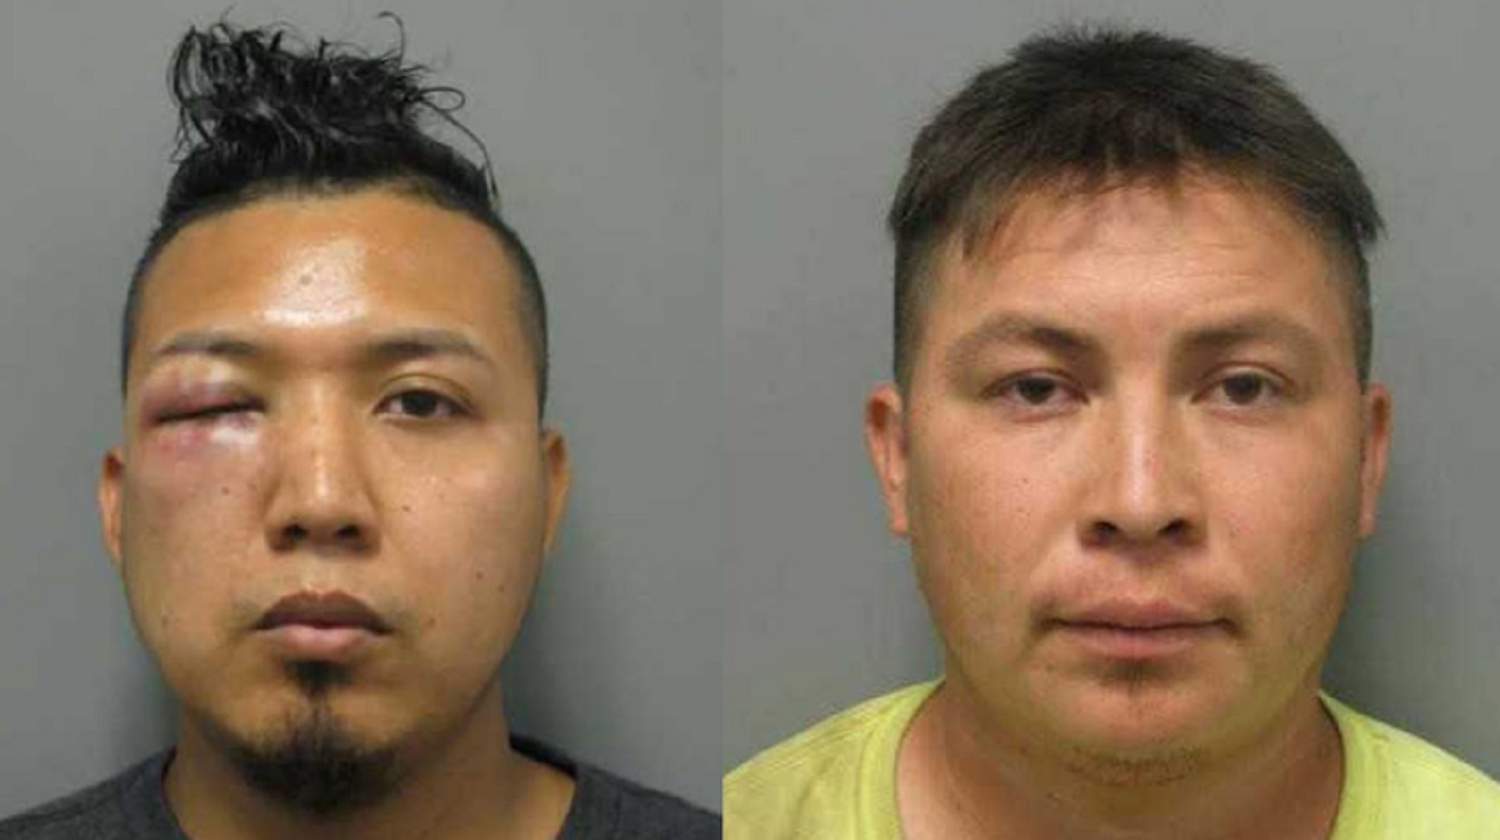 Sanctuary County Will Notify ICE When Alleged Illegal Alien Rapists Are Released From Jail